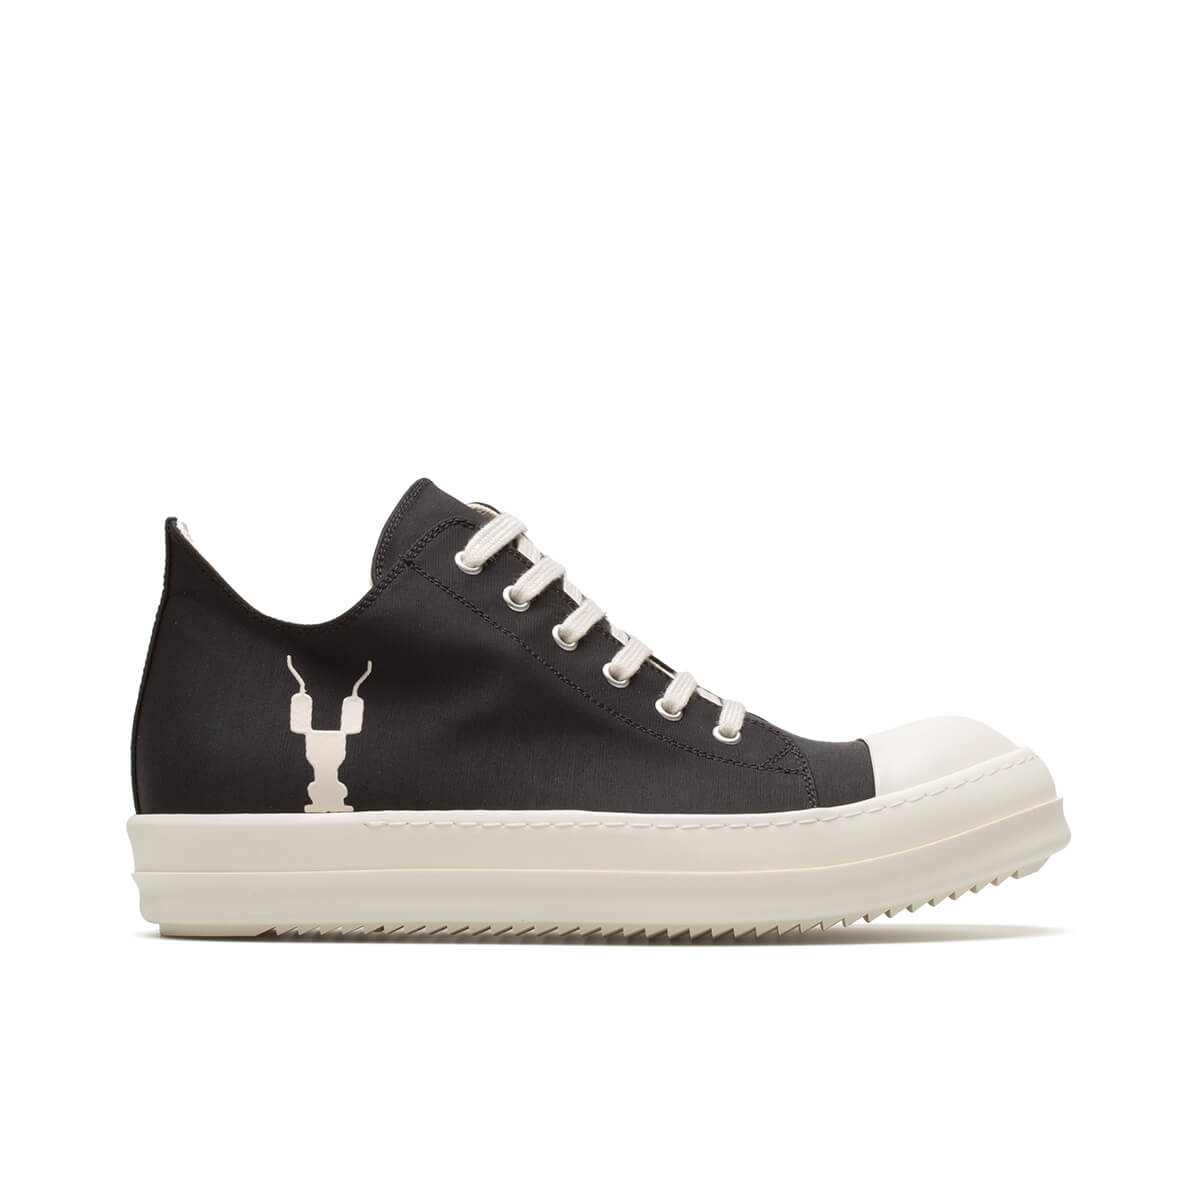 RICK OWENS DRKSHDW Low sneakers